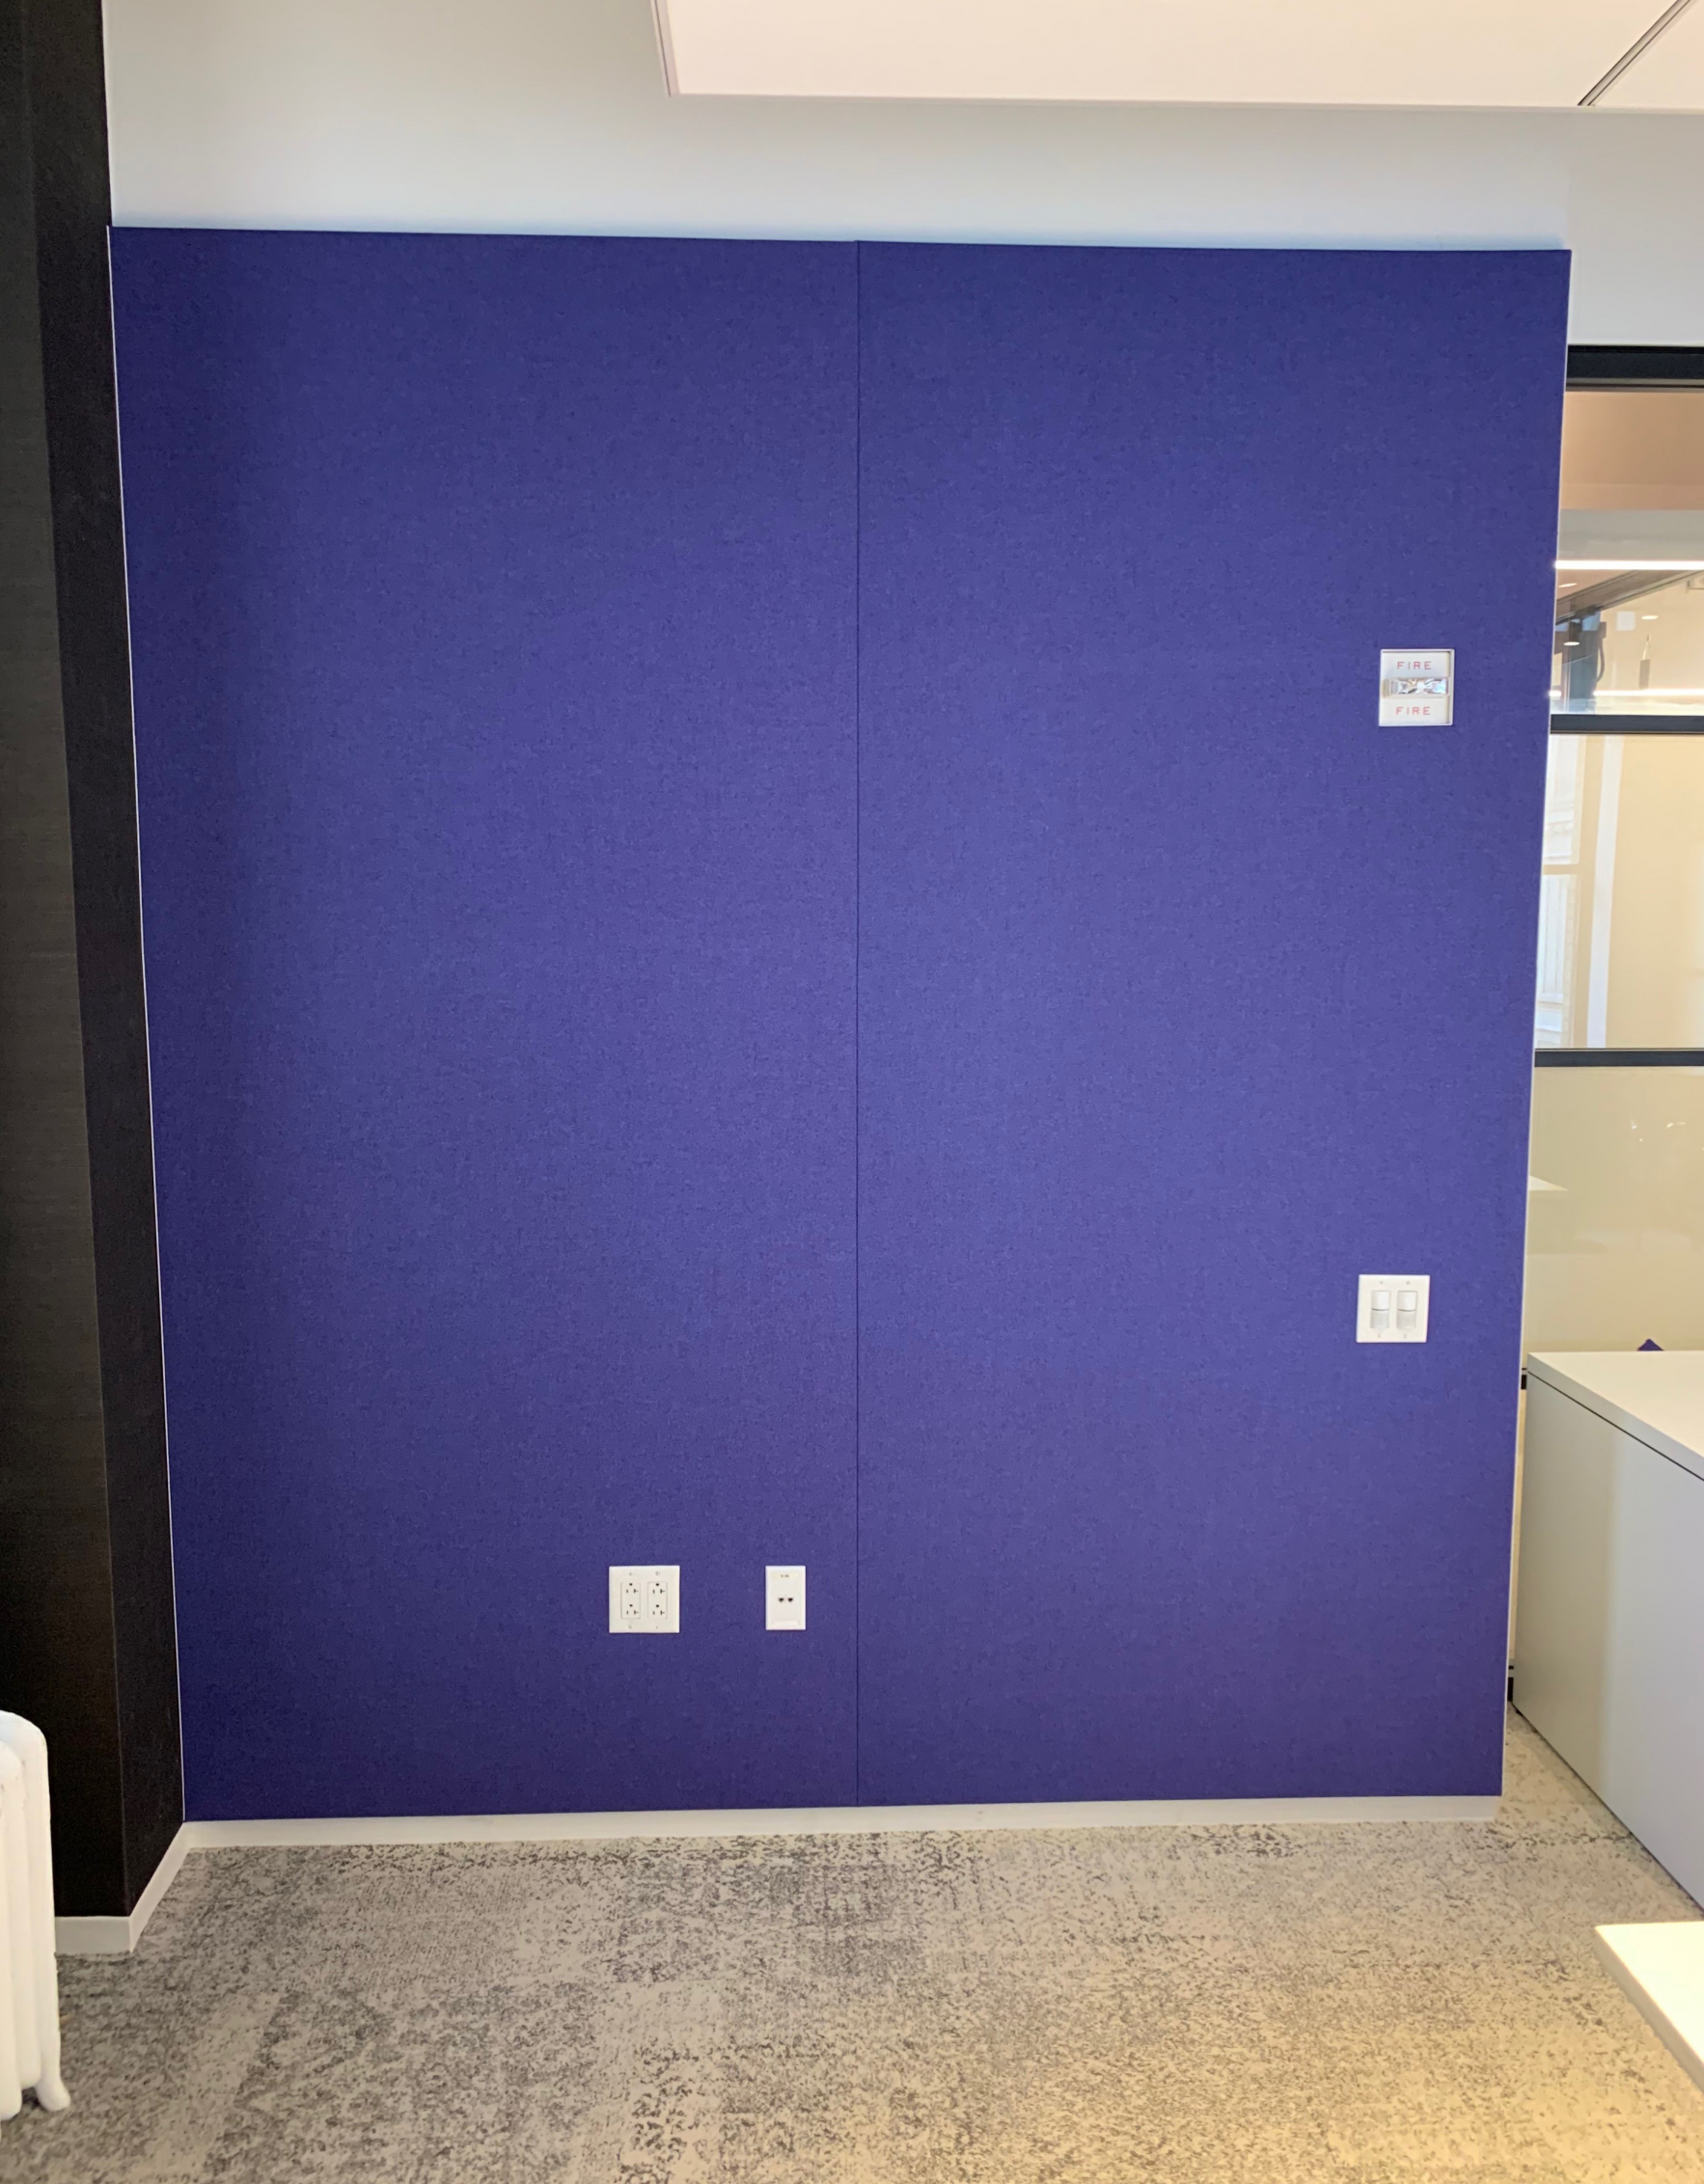 Felt Fabric Wall in Conference Room 2